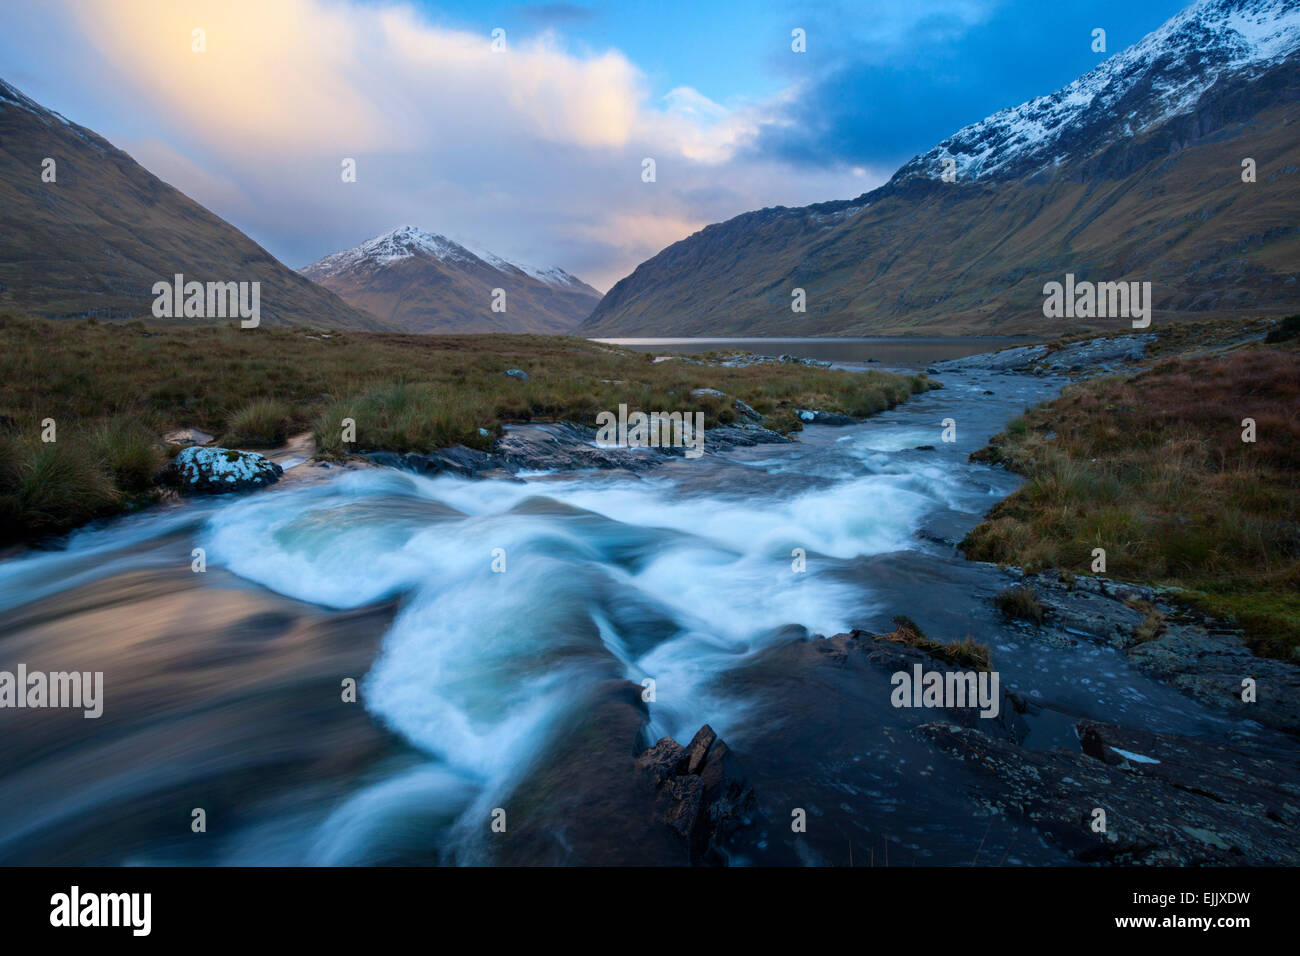 Winter sunset on Glencullin River and Doolough, County Mayo, Ireland. - Stock Image